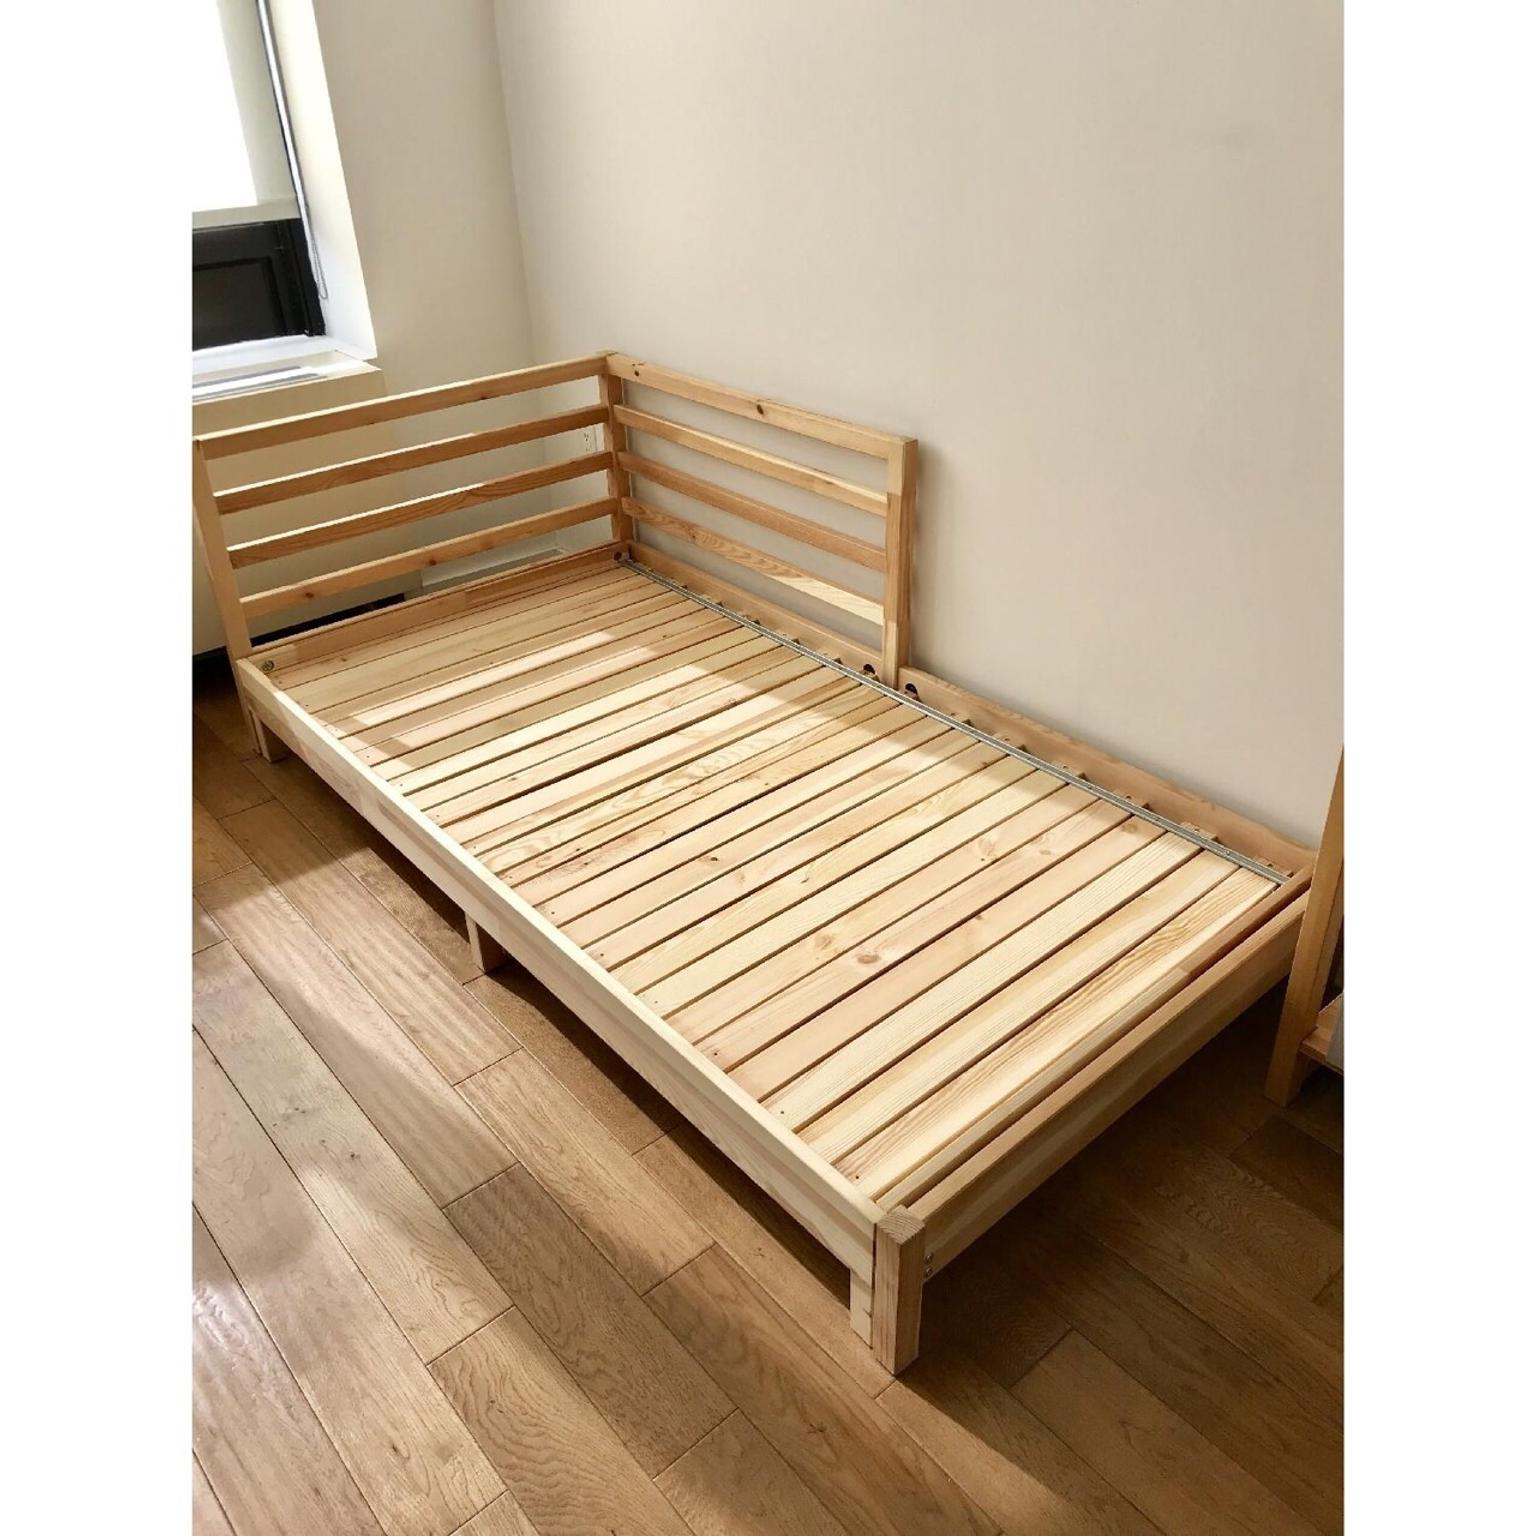 Ikea Tarva Day Bed With Two Mattresses Incl In E2 London For 125 00 For Sale Shpock